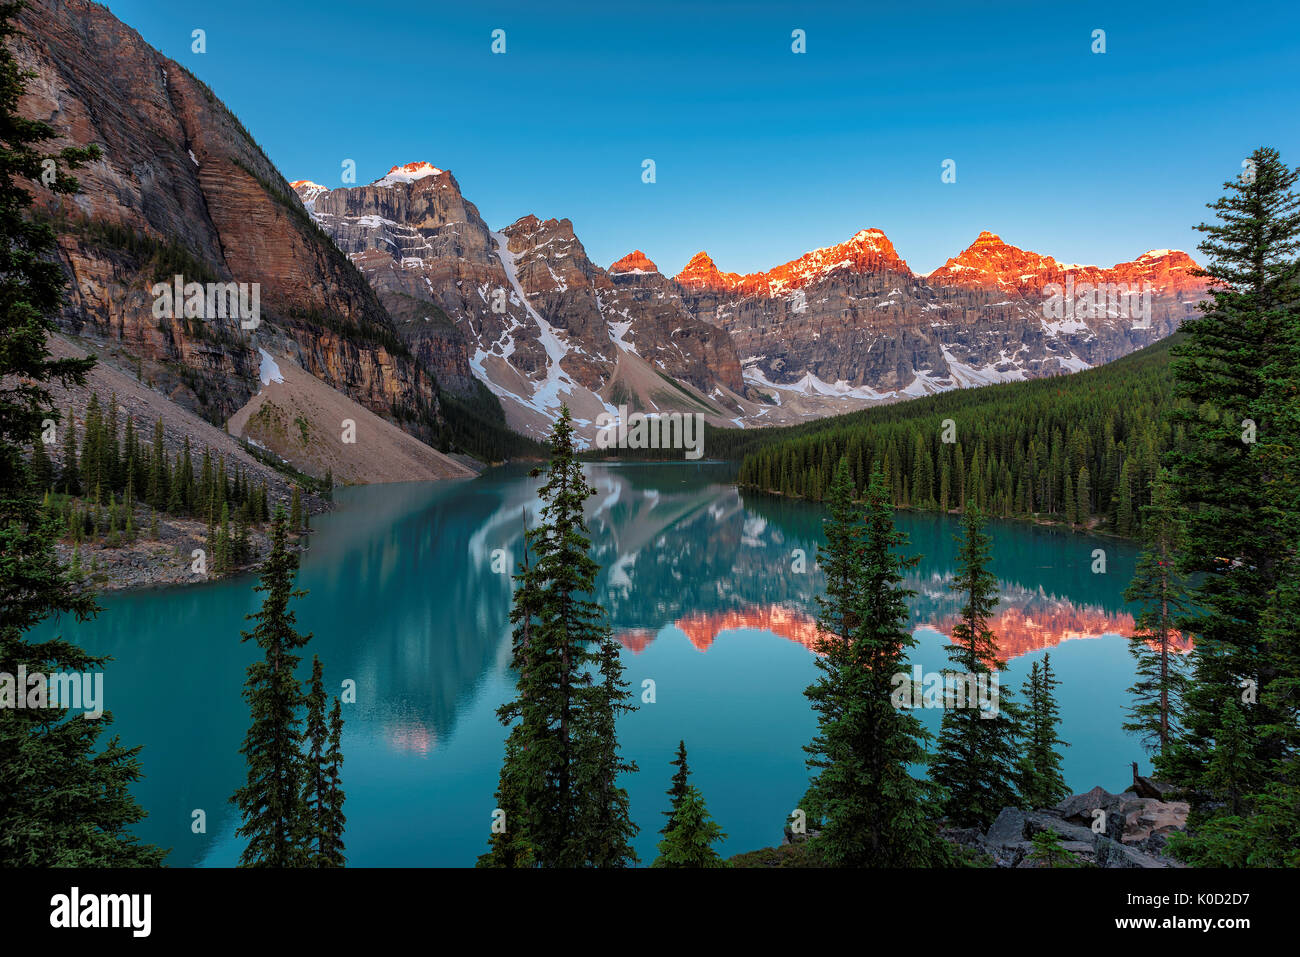 Moraine lake at sunrise in Banff National Park - Stock Image